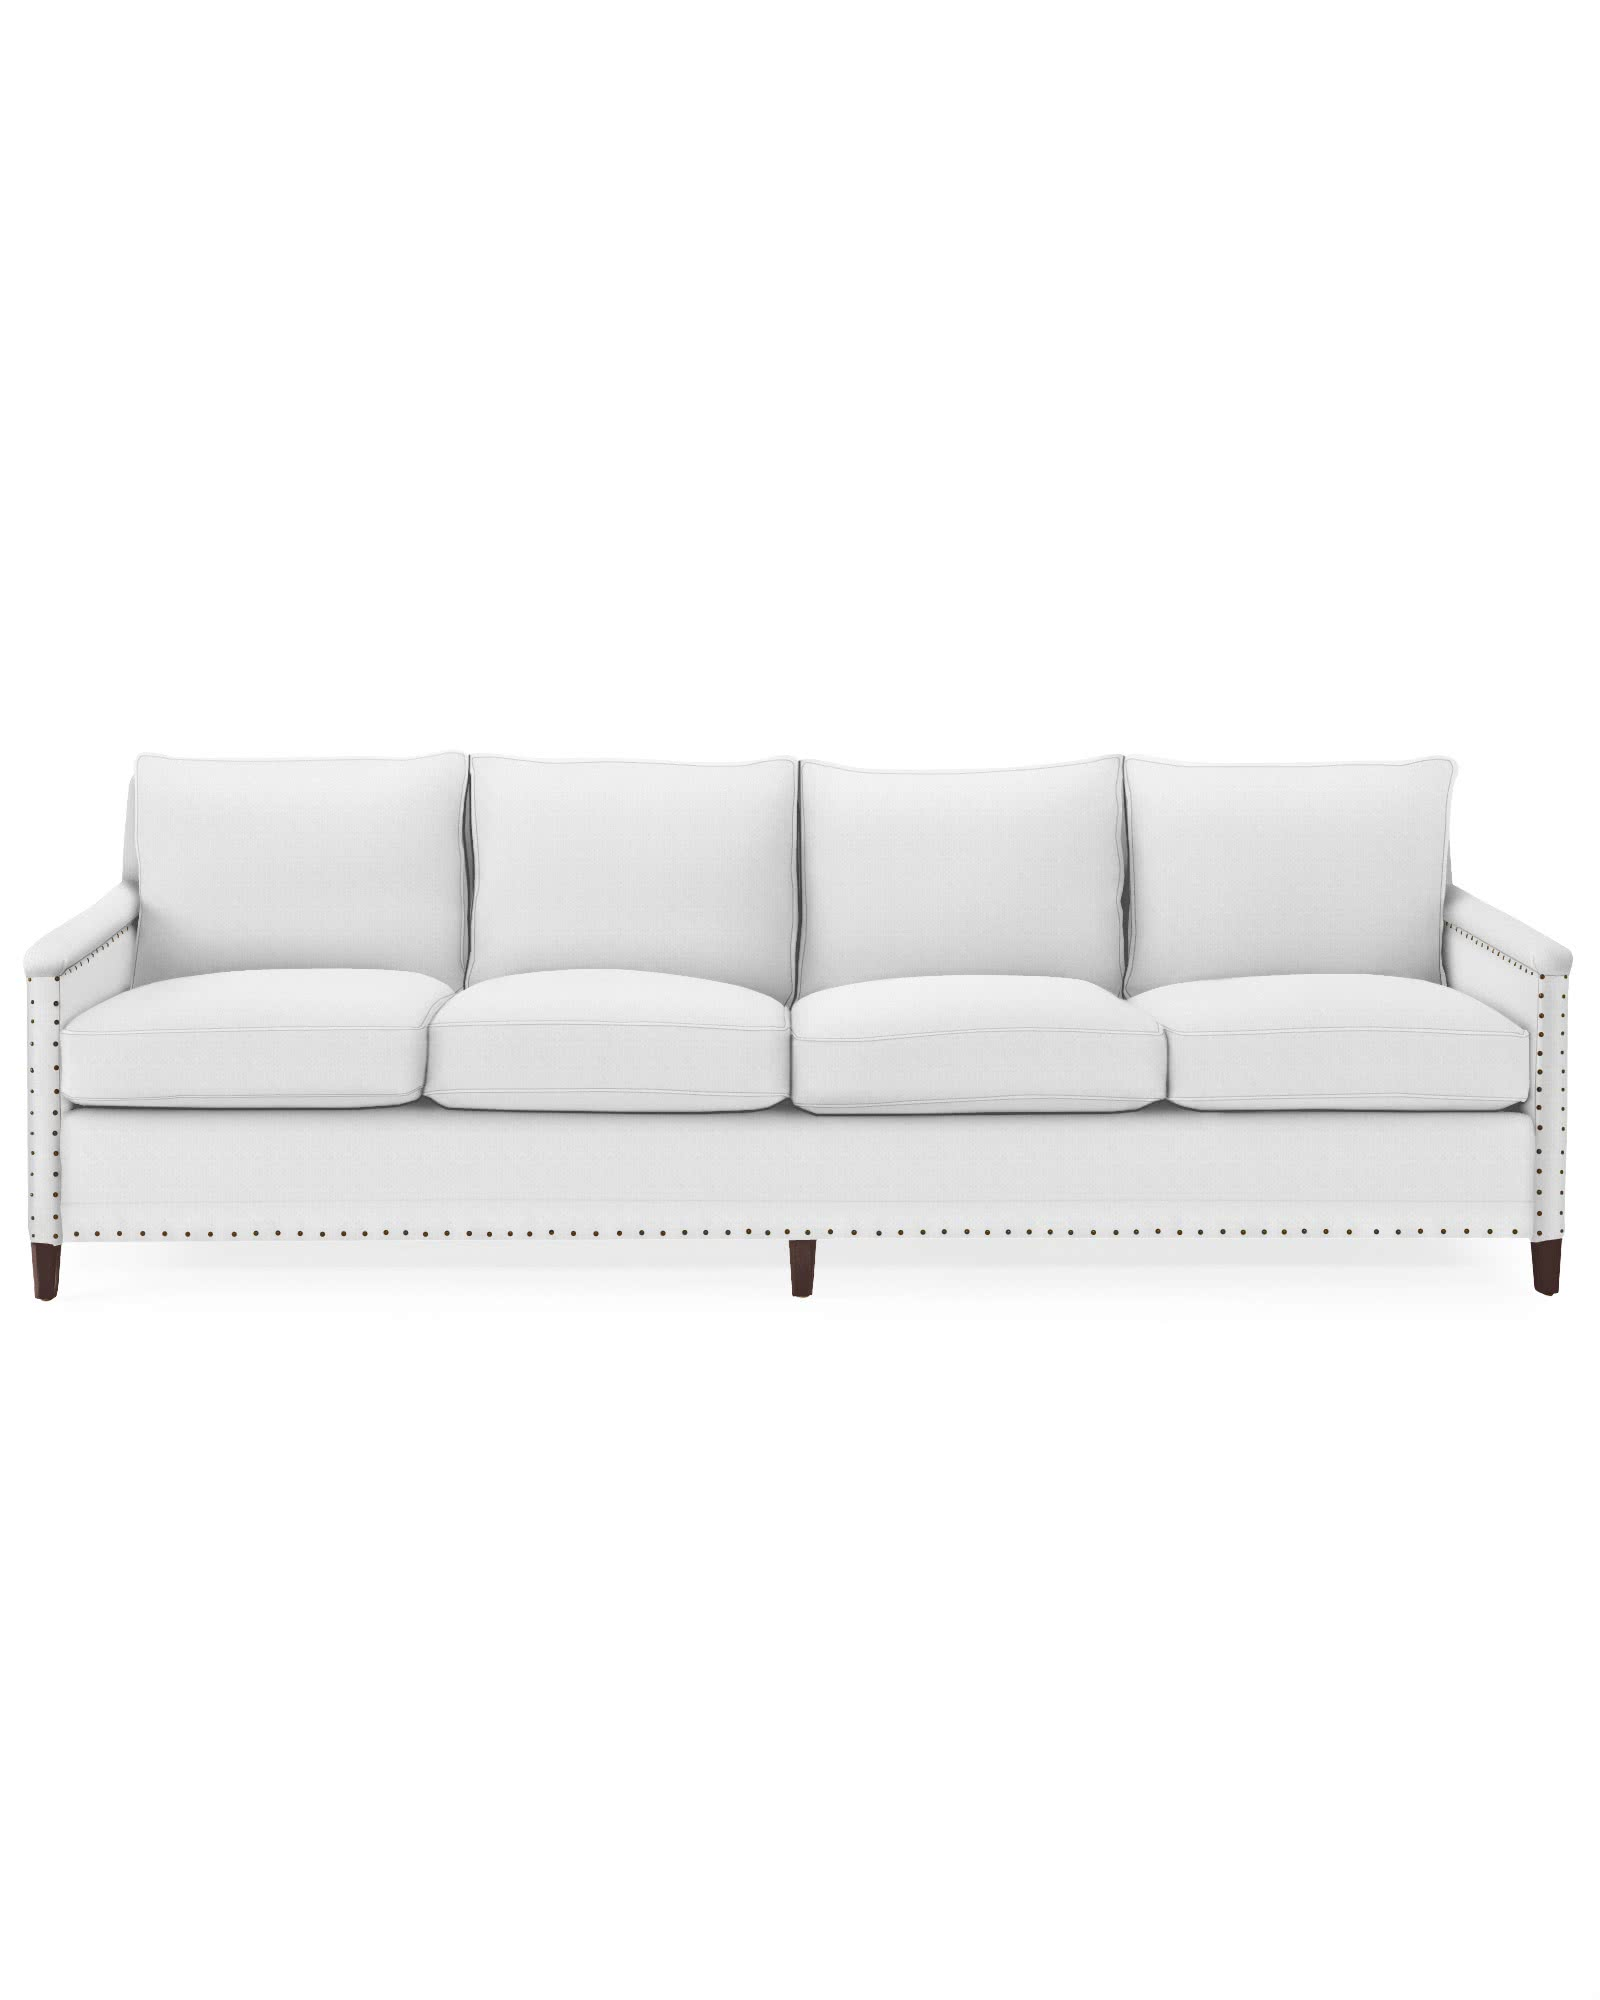 Spruce Street 4-Seat Sofa with Nailheads,